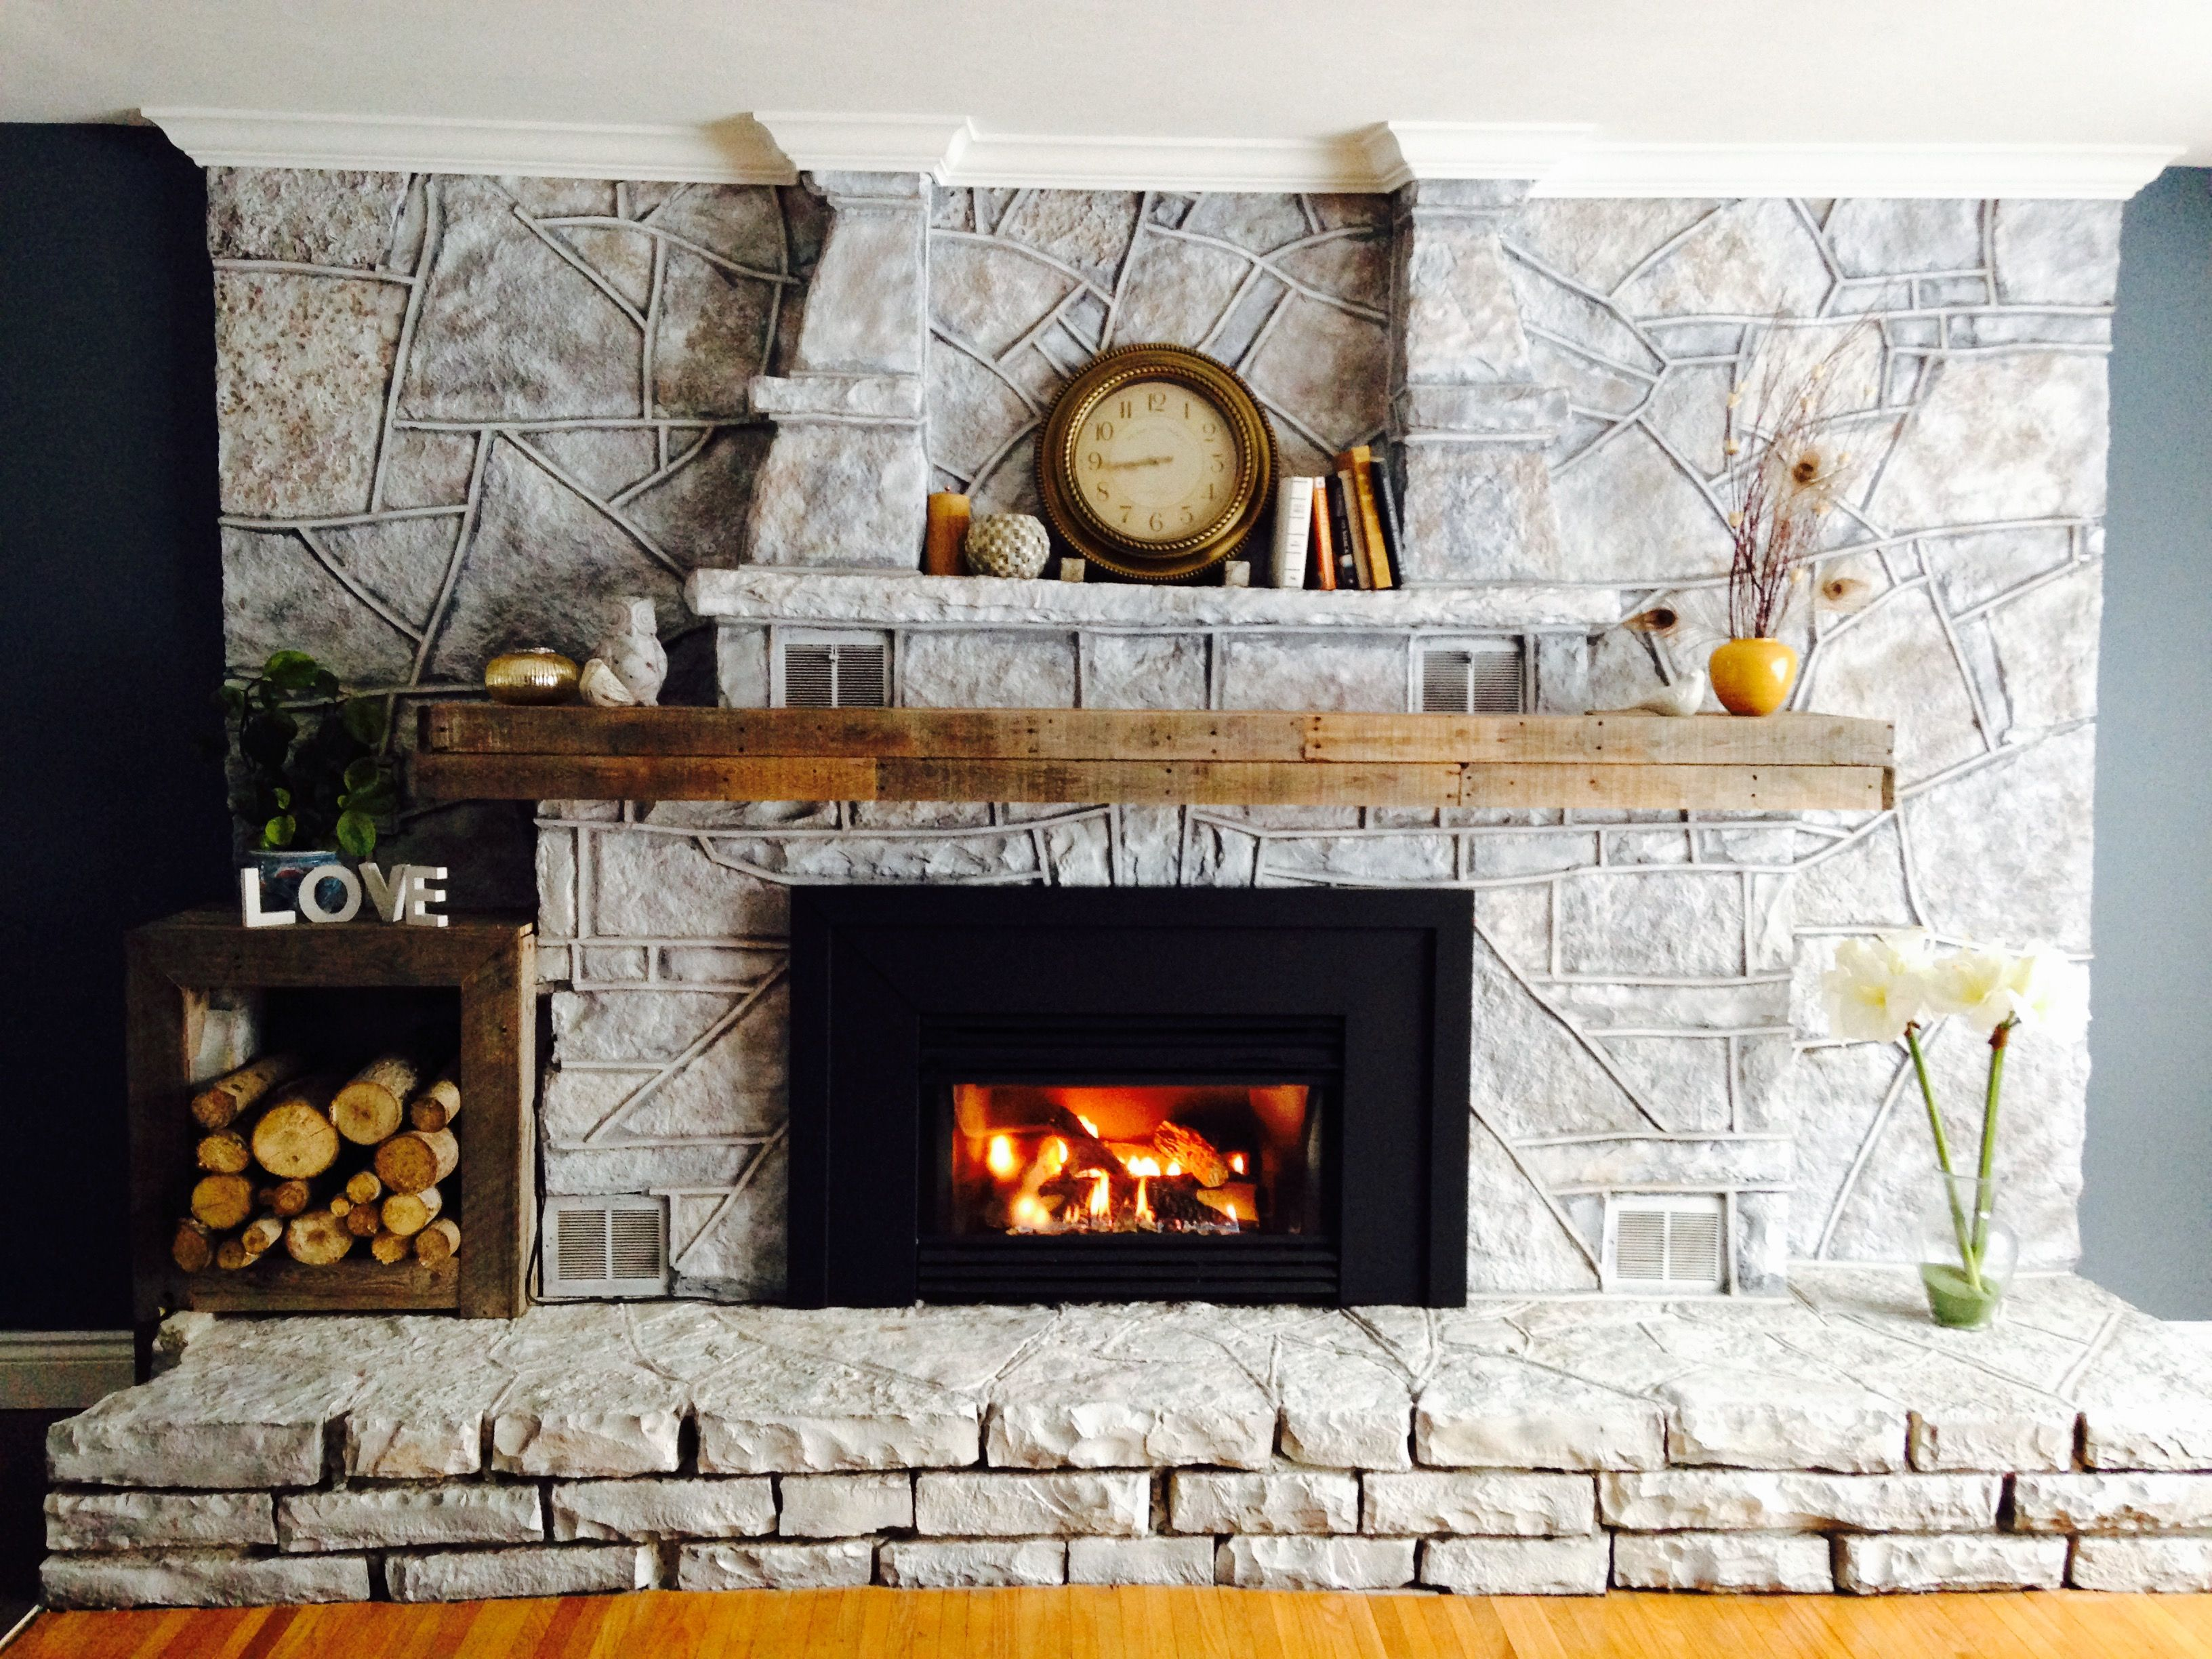 entertainment media fragment propane composed traditional stone fireplace metal frame wrought insert center tv with gas finishing black stand powered originalviews living style room